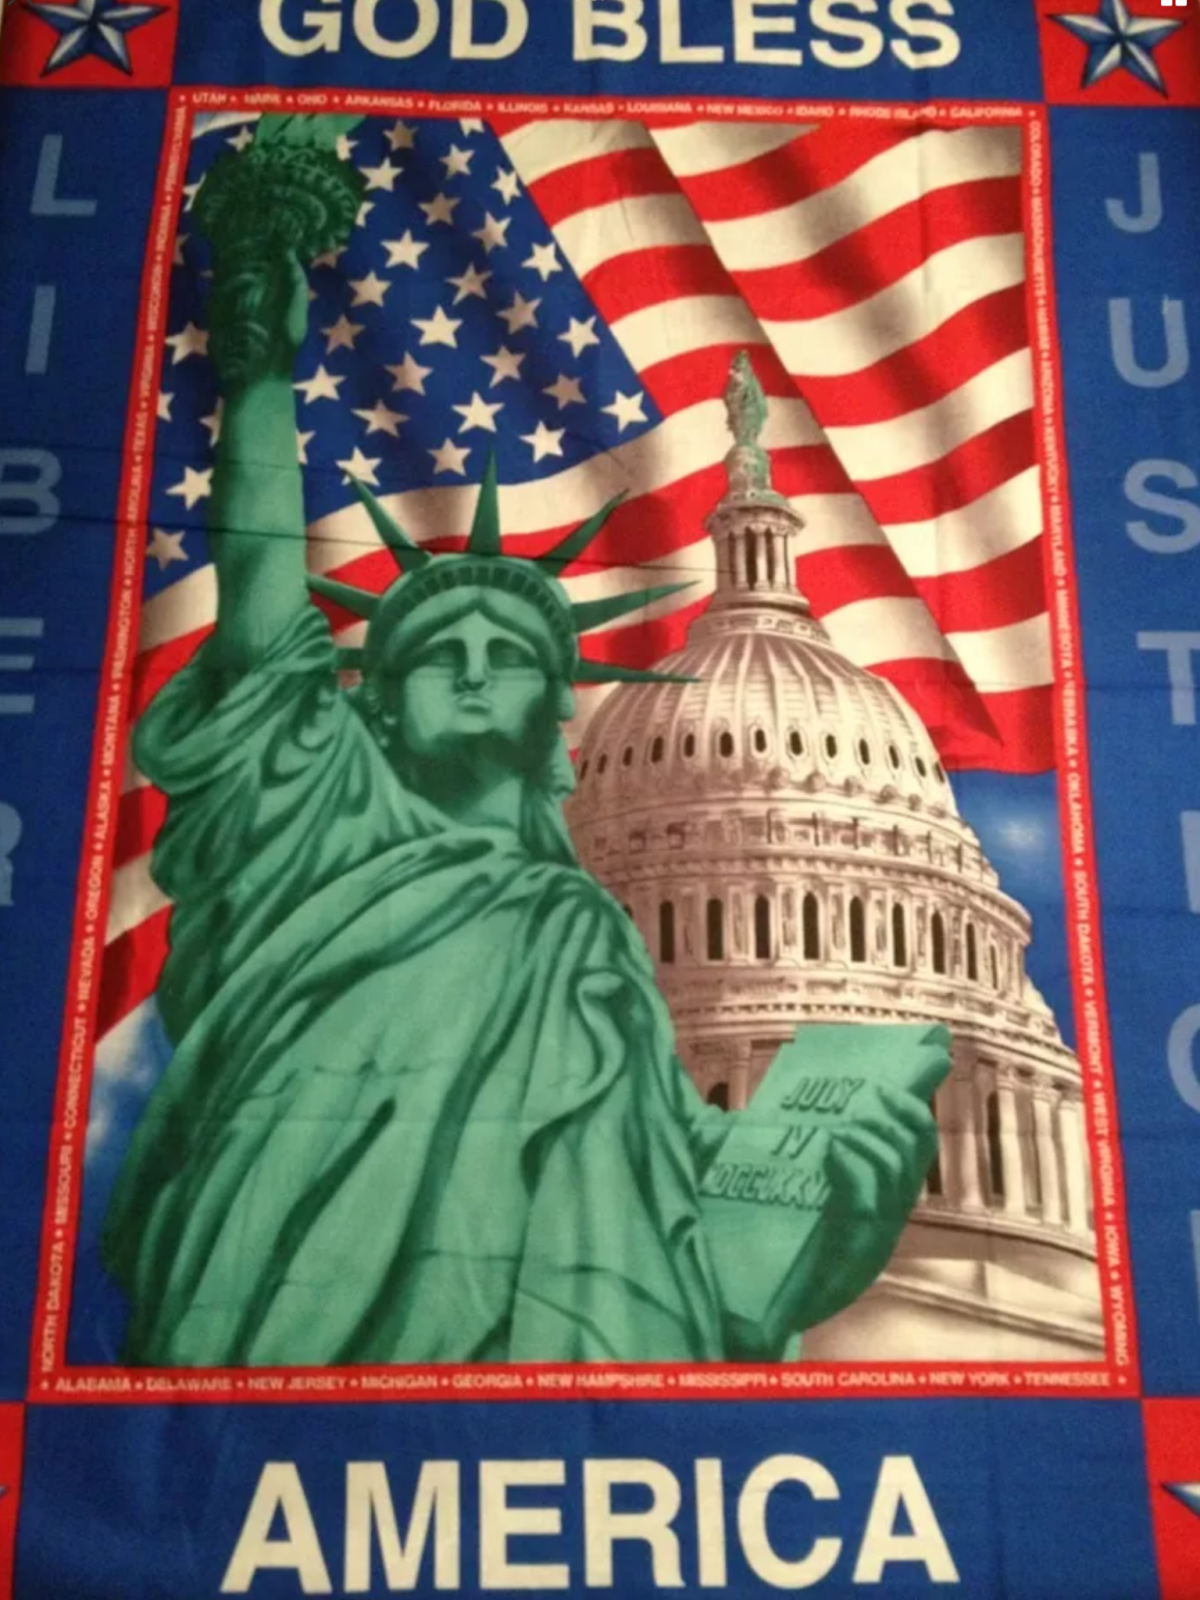 United States of America God Bless USA Statue of Liberty Patriotic Cotton Quilt Fabric Panel PNL60